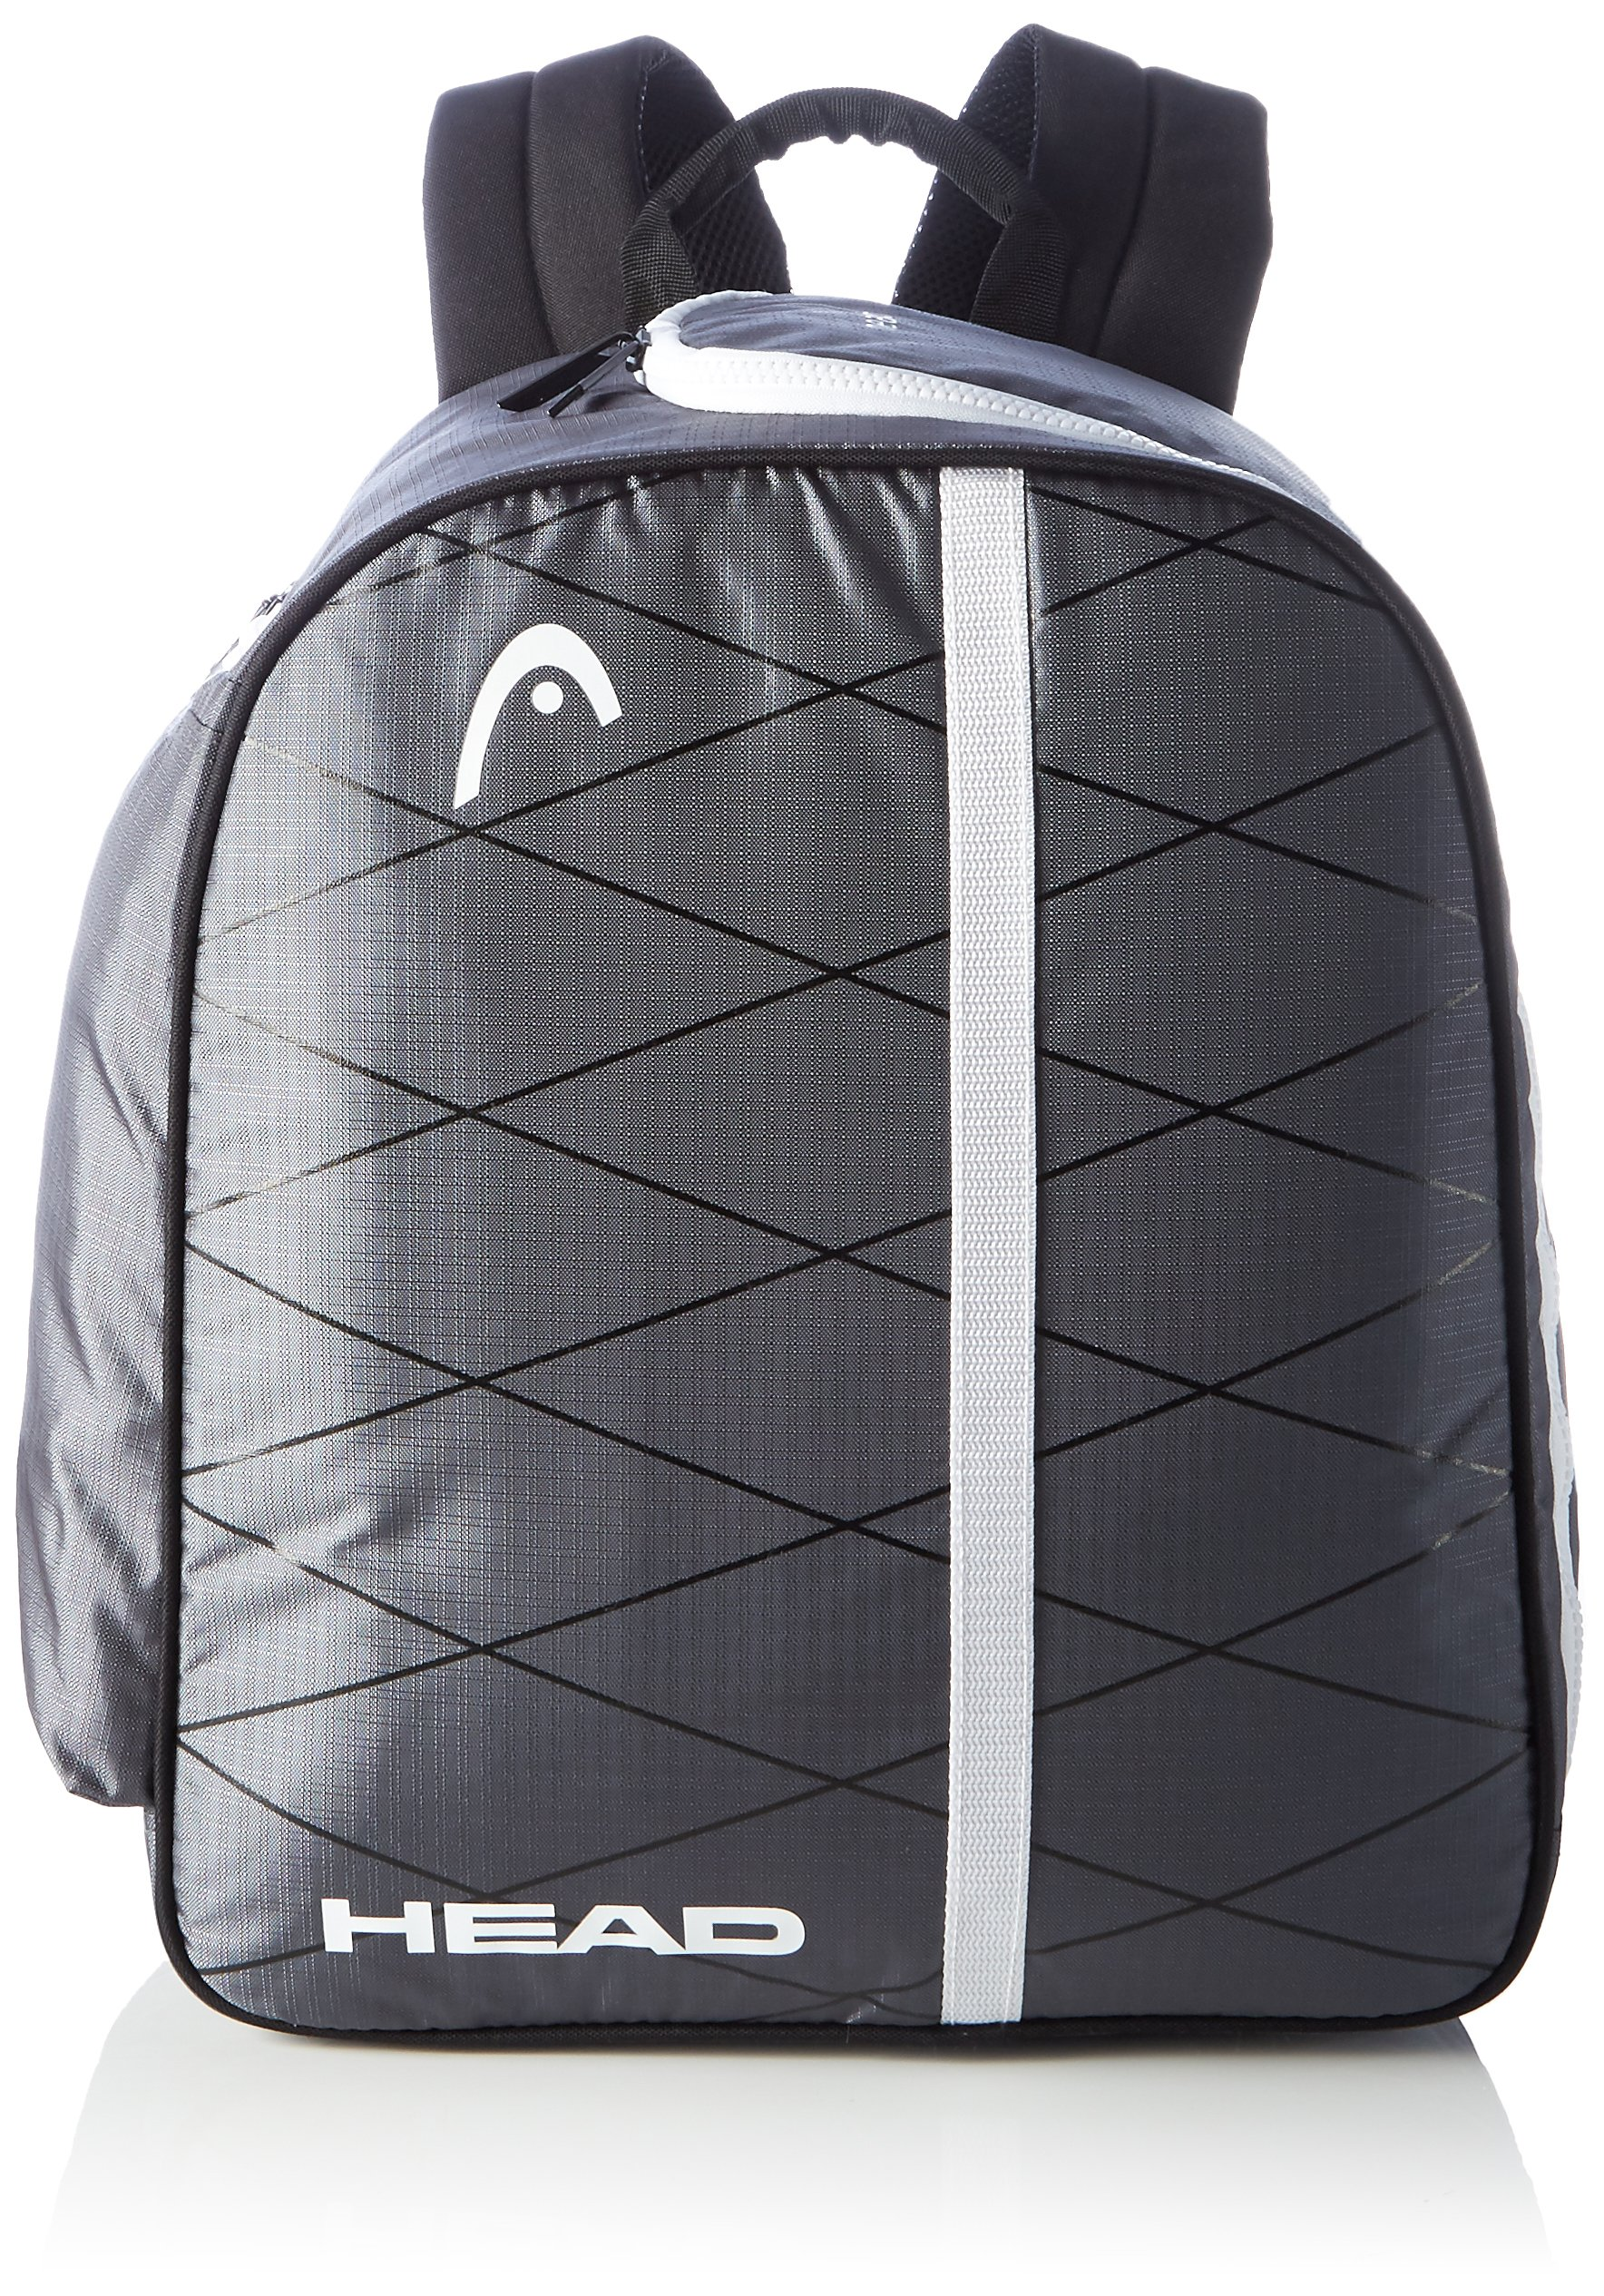 HEAD Snow sports boot backpack Boot Backpack